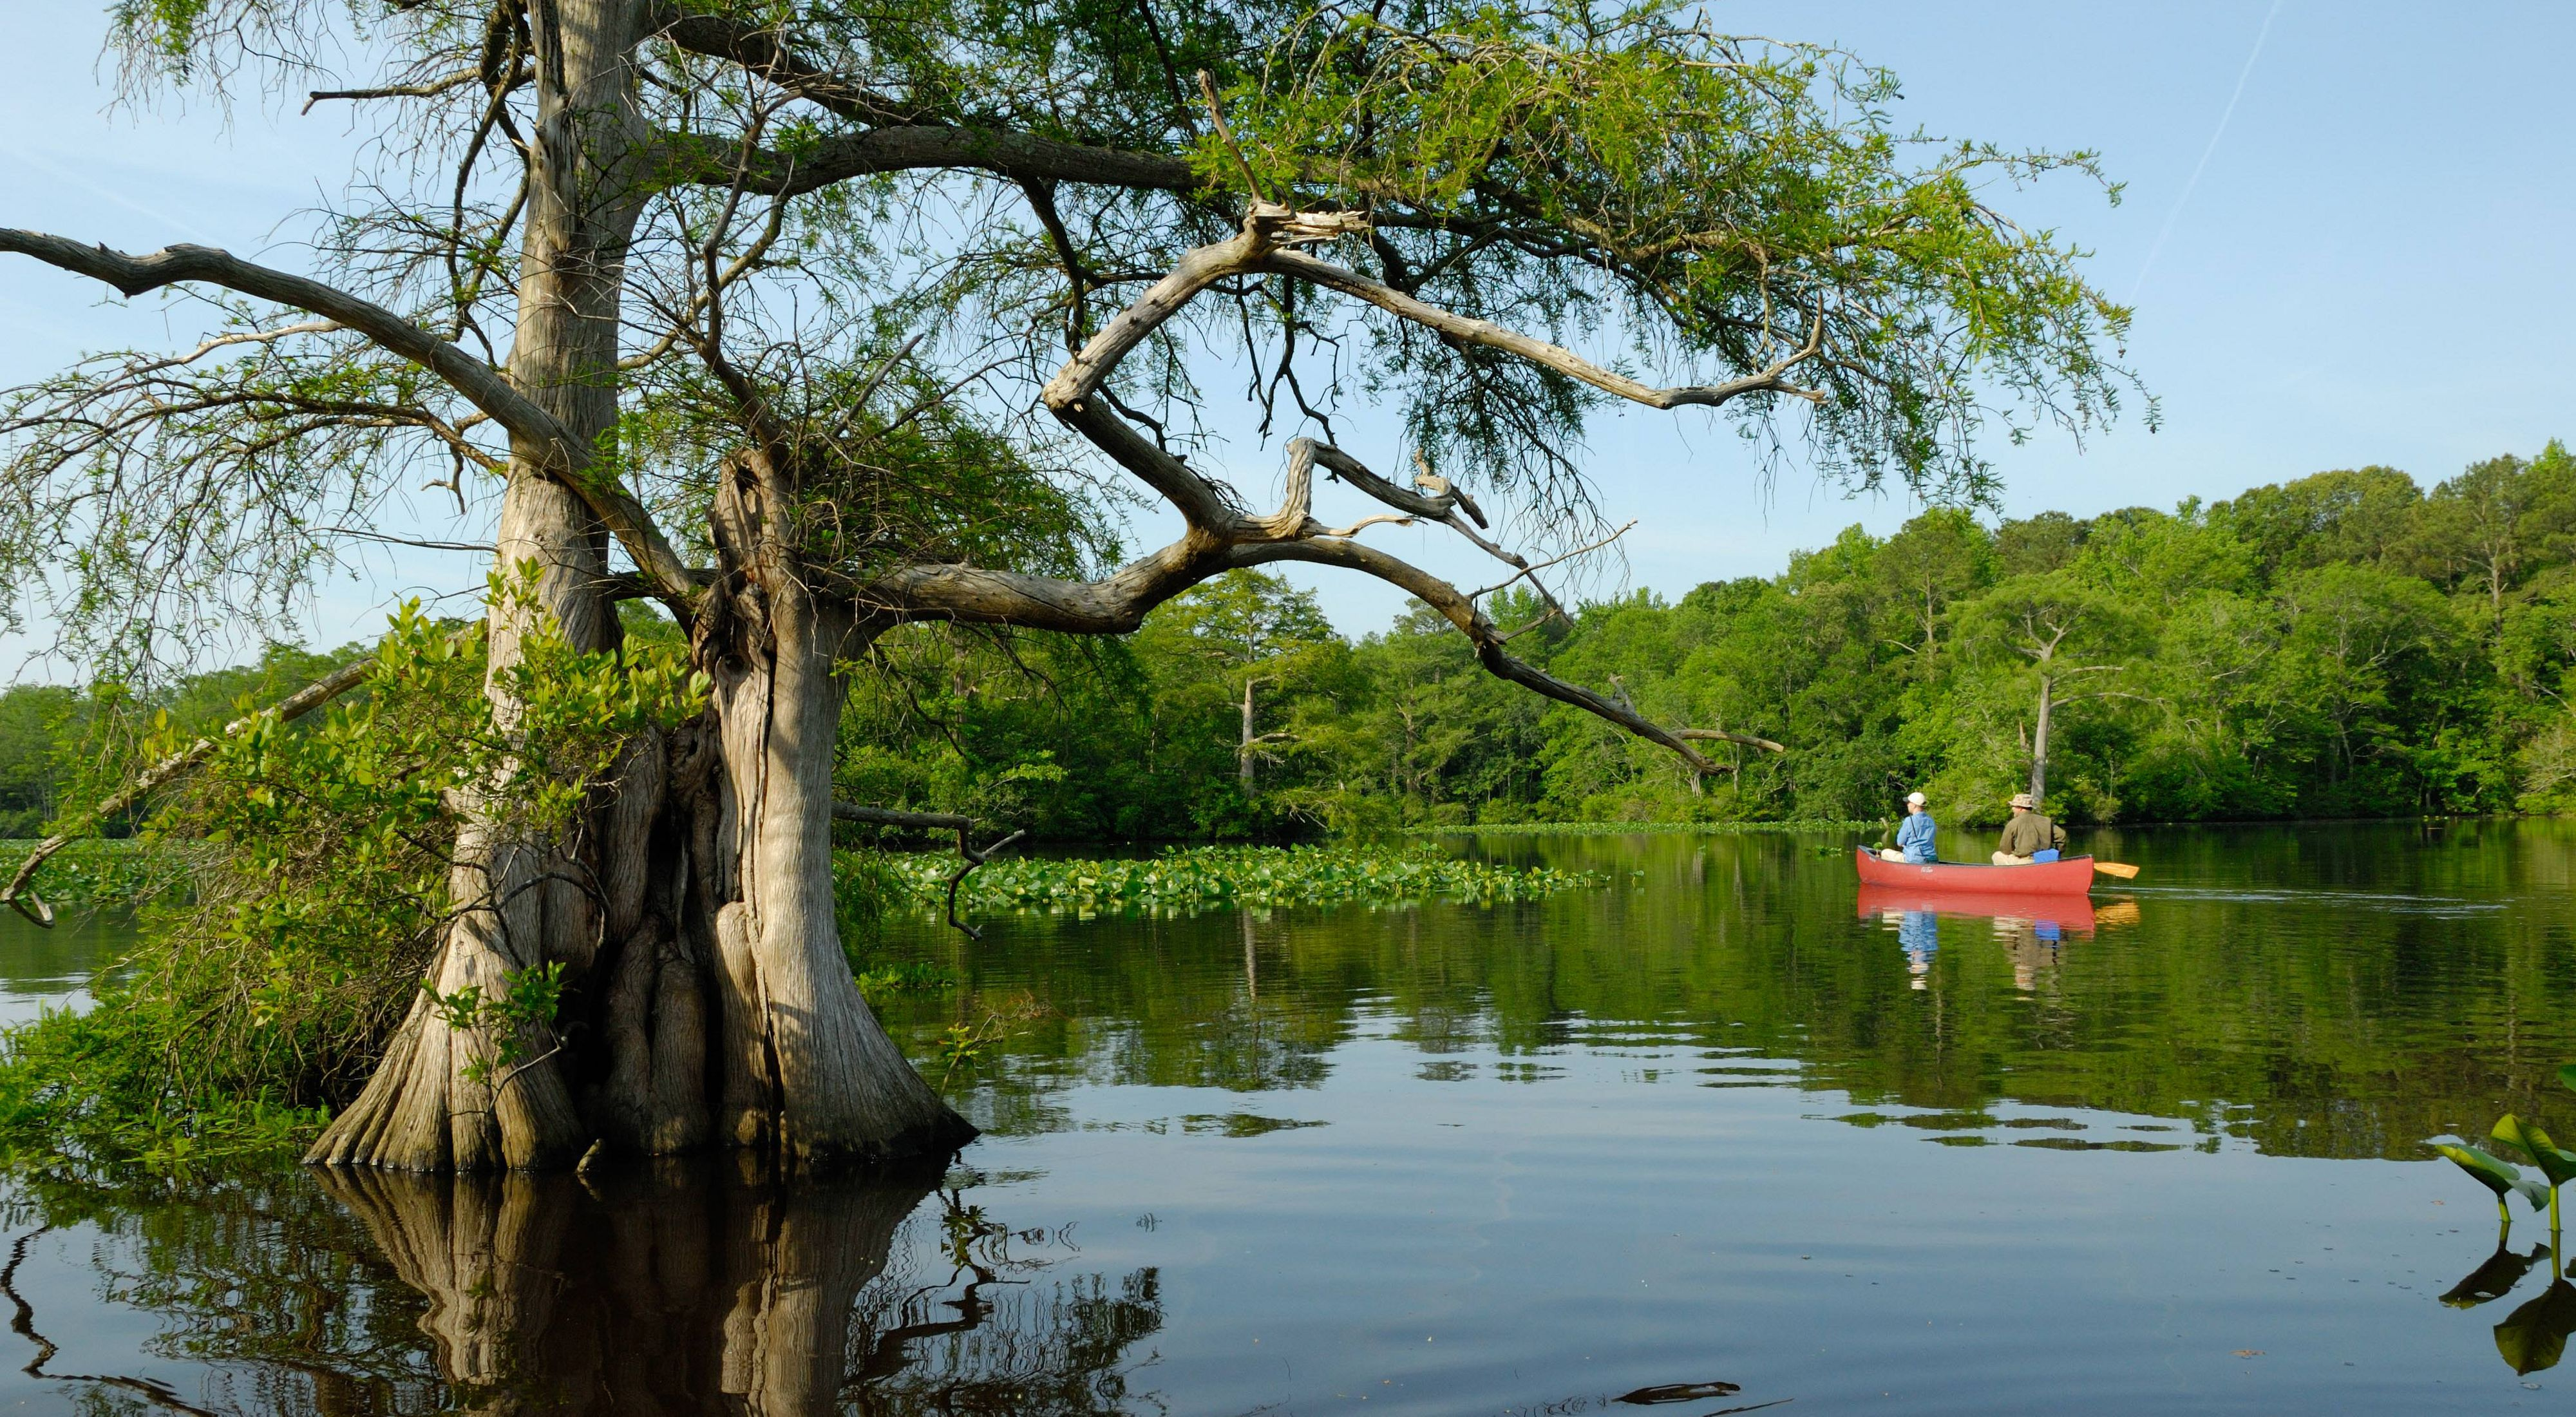 Two people paddle a red canoe by a towering bald cypress tree in Nassawango Creek.